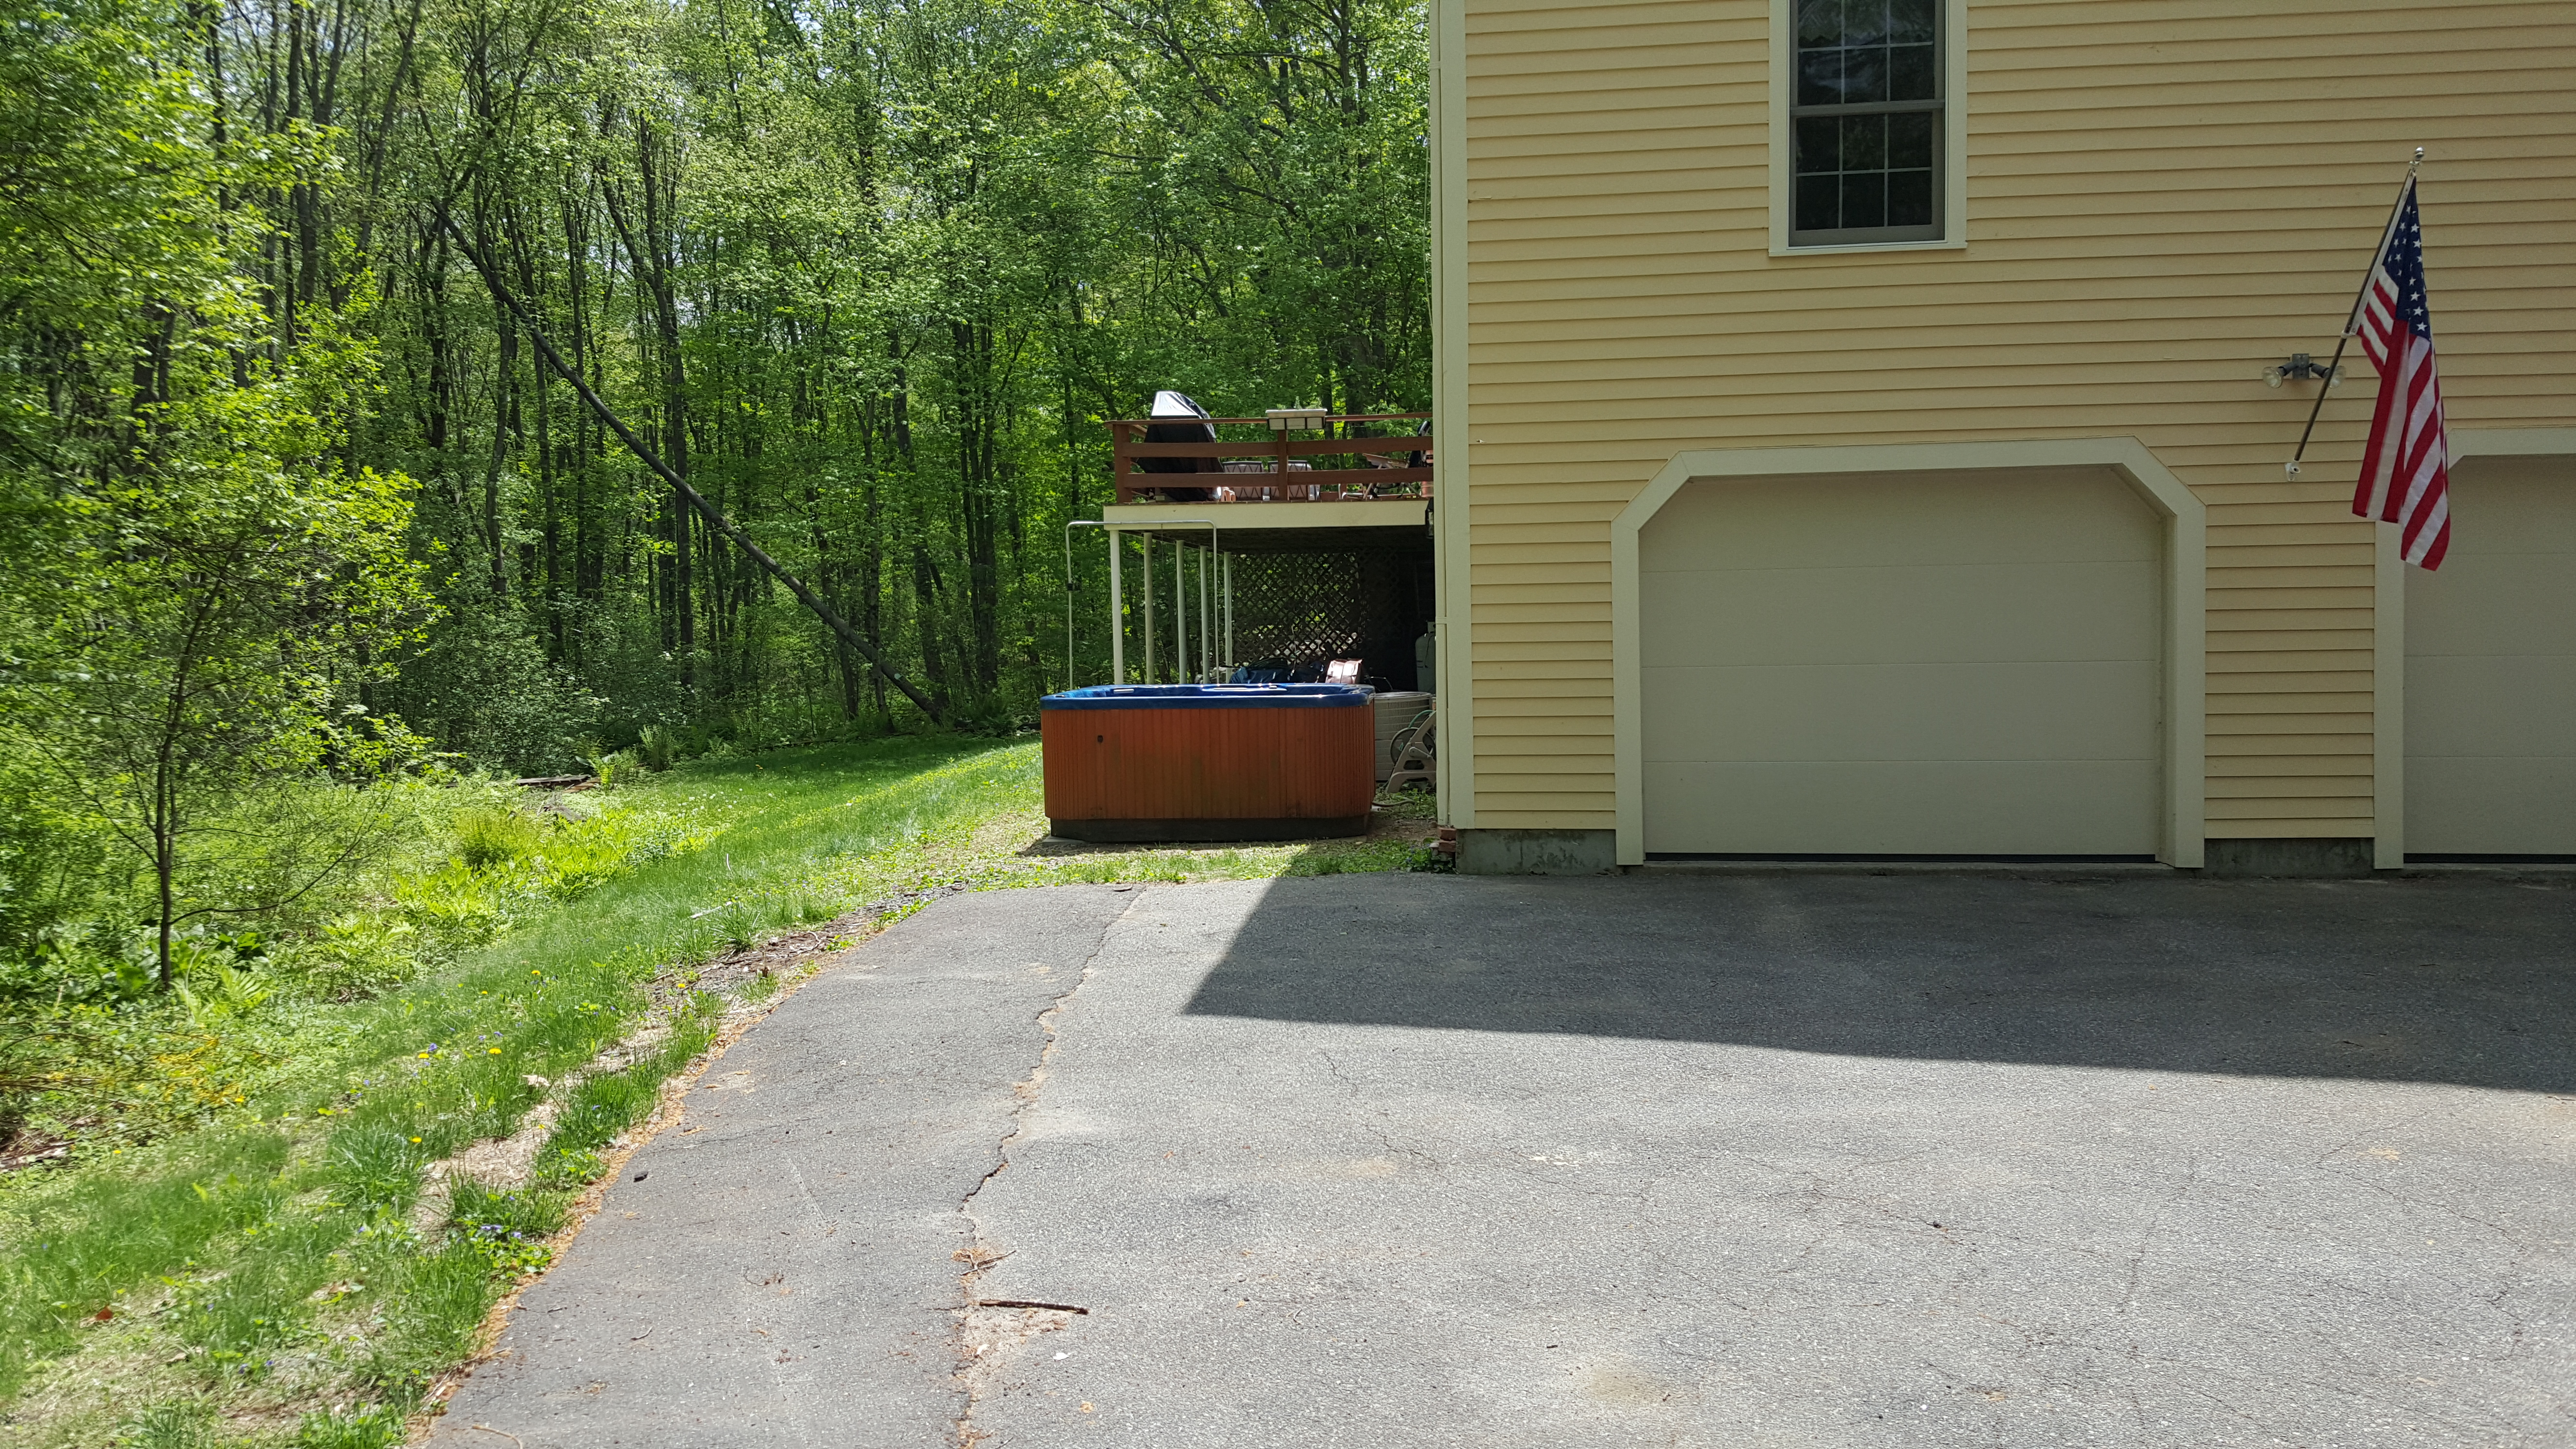 Hot Tub Moving Storage Amp Relocation Services In Boston